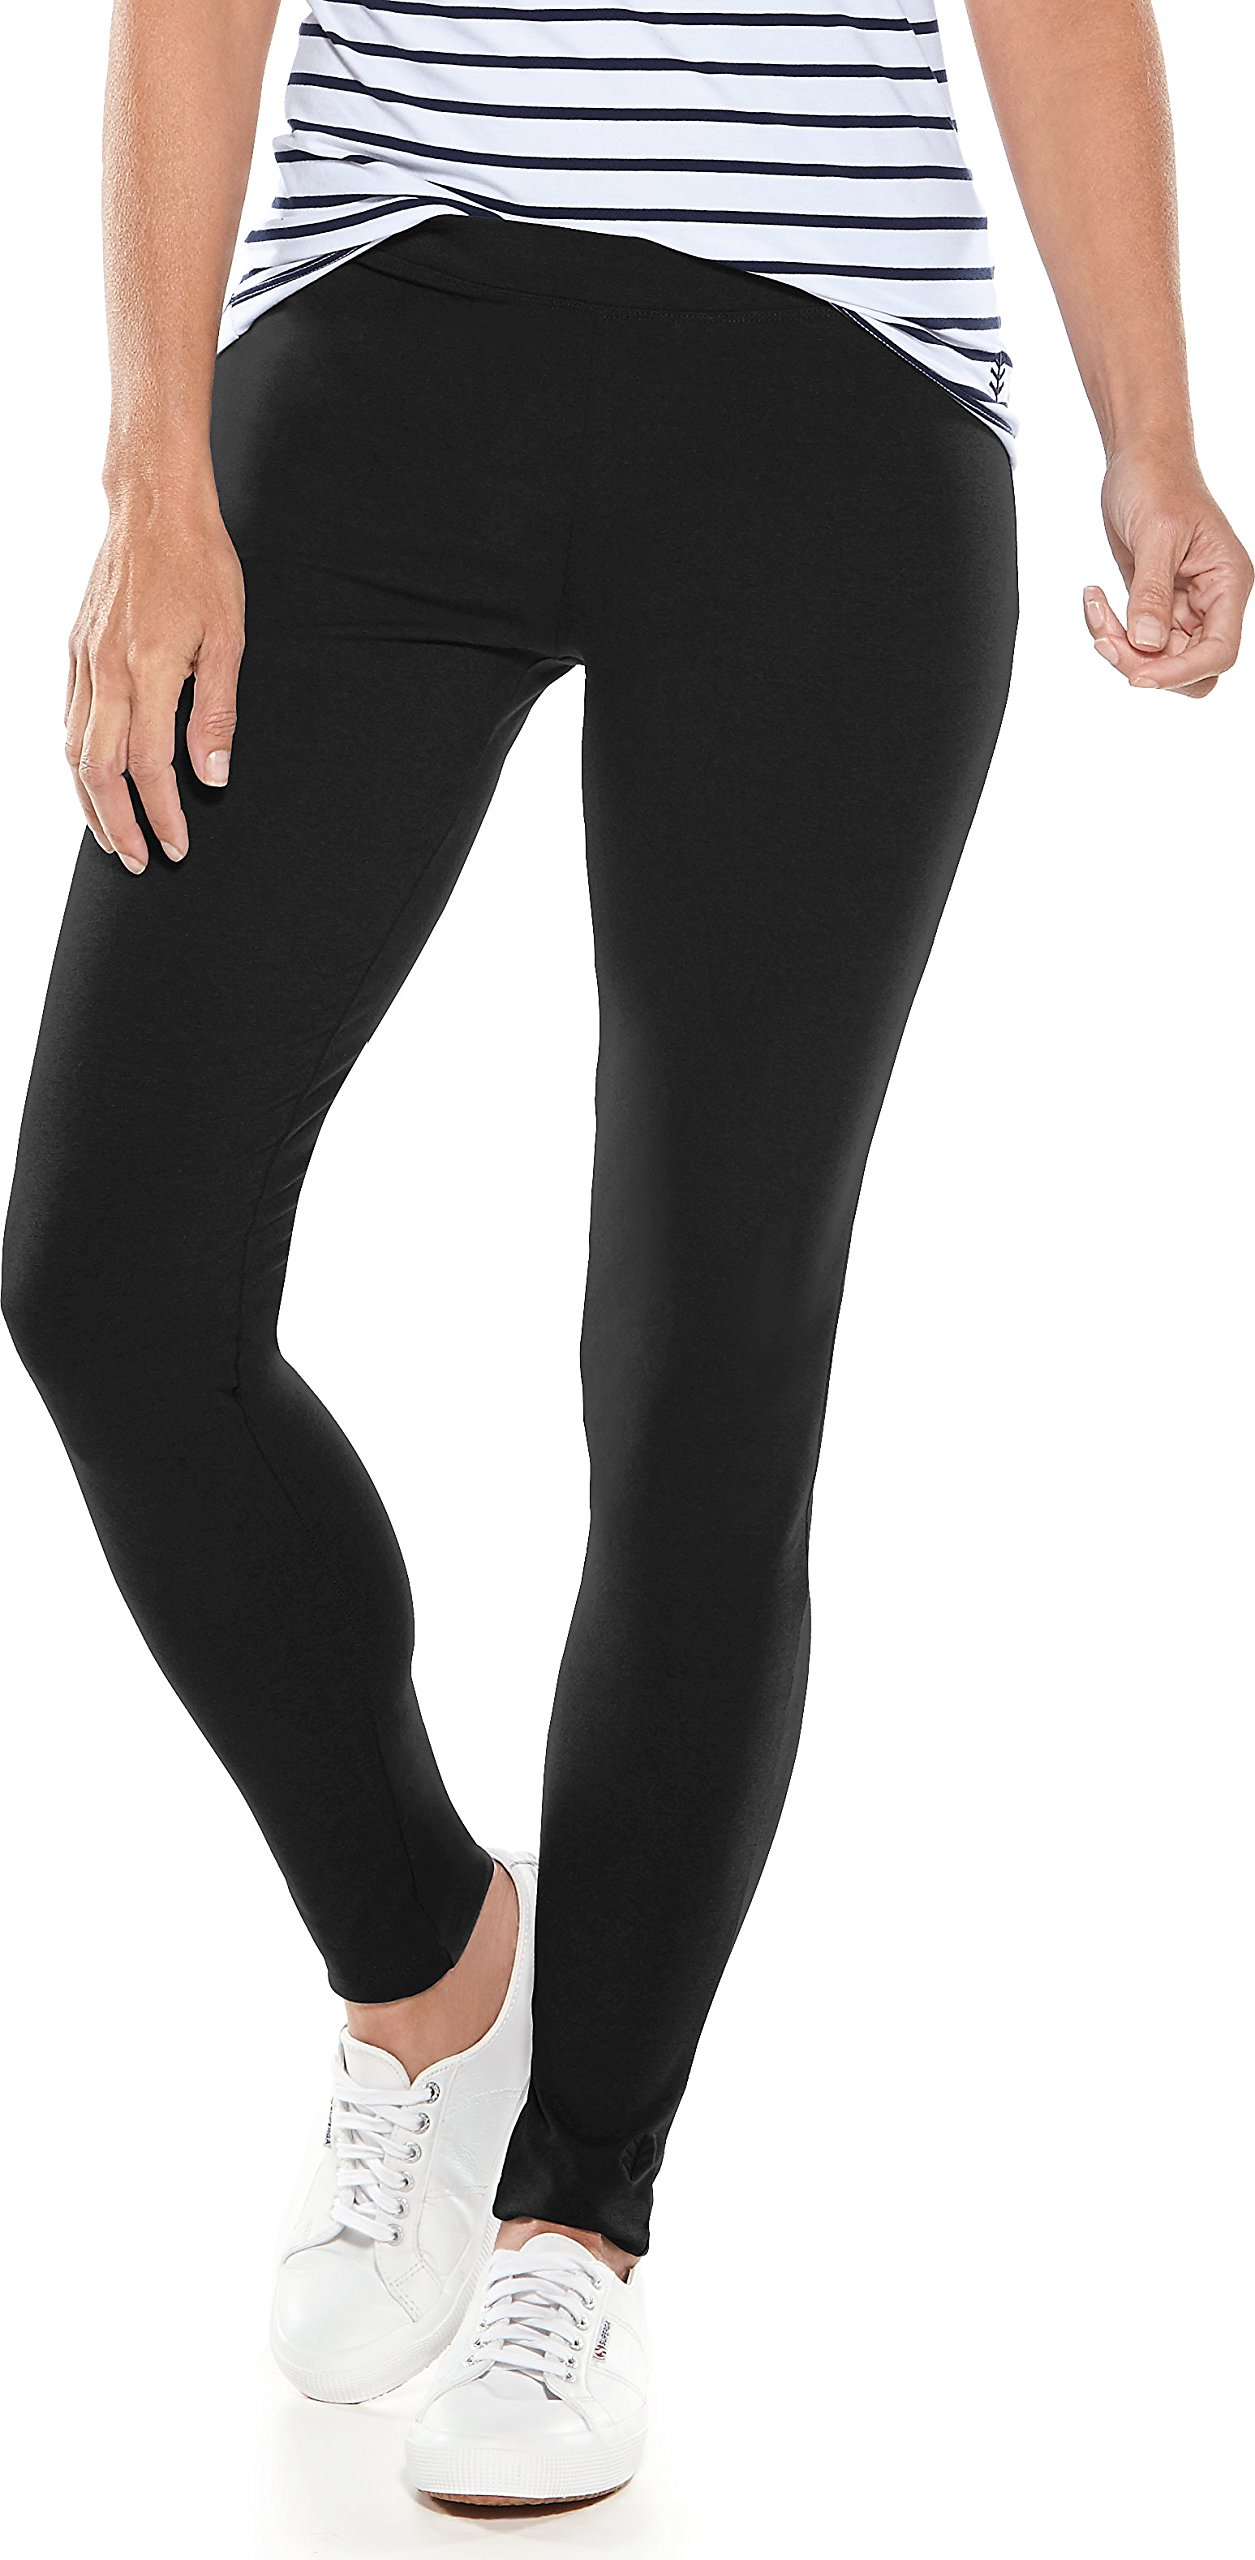 Coolibar UPF 50+ Women's Summer Leggings - Sun Protective (Medium- Black)